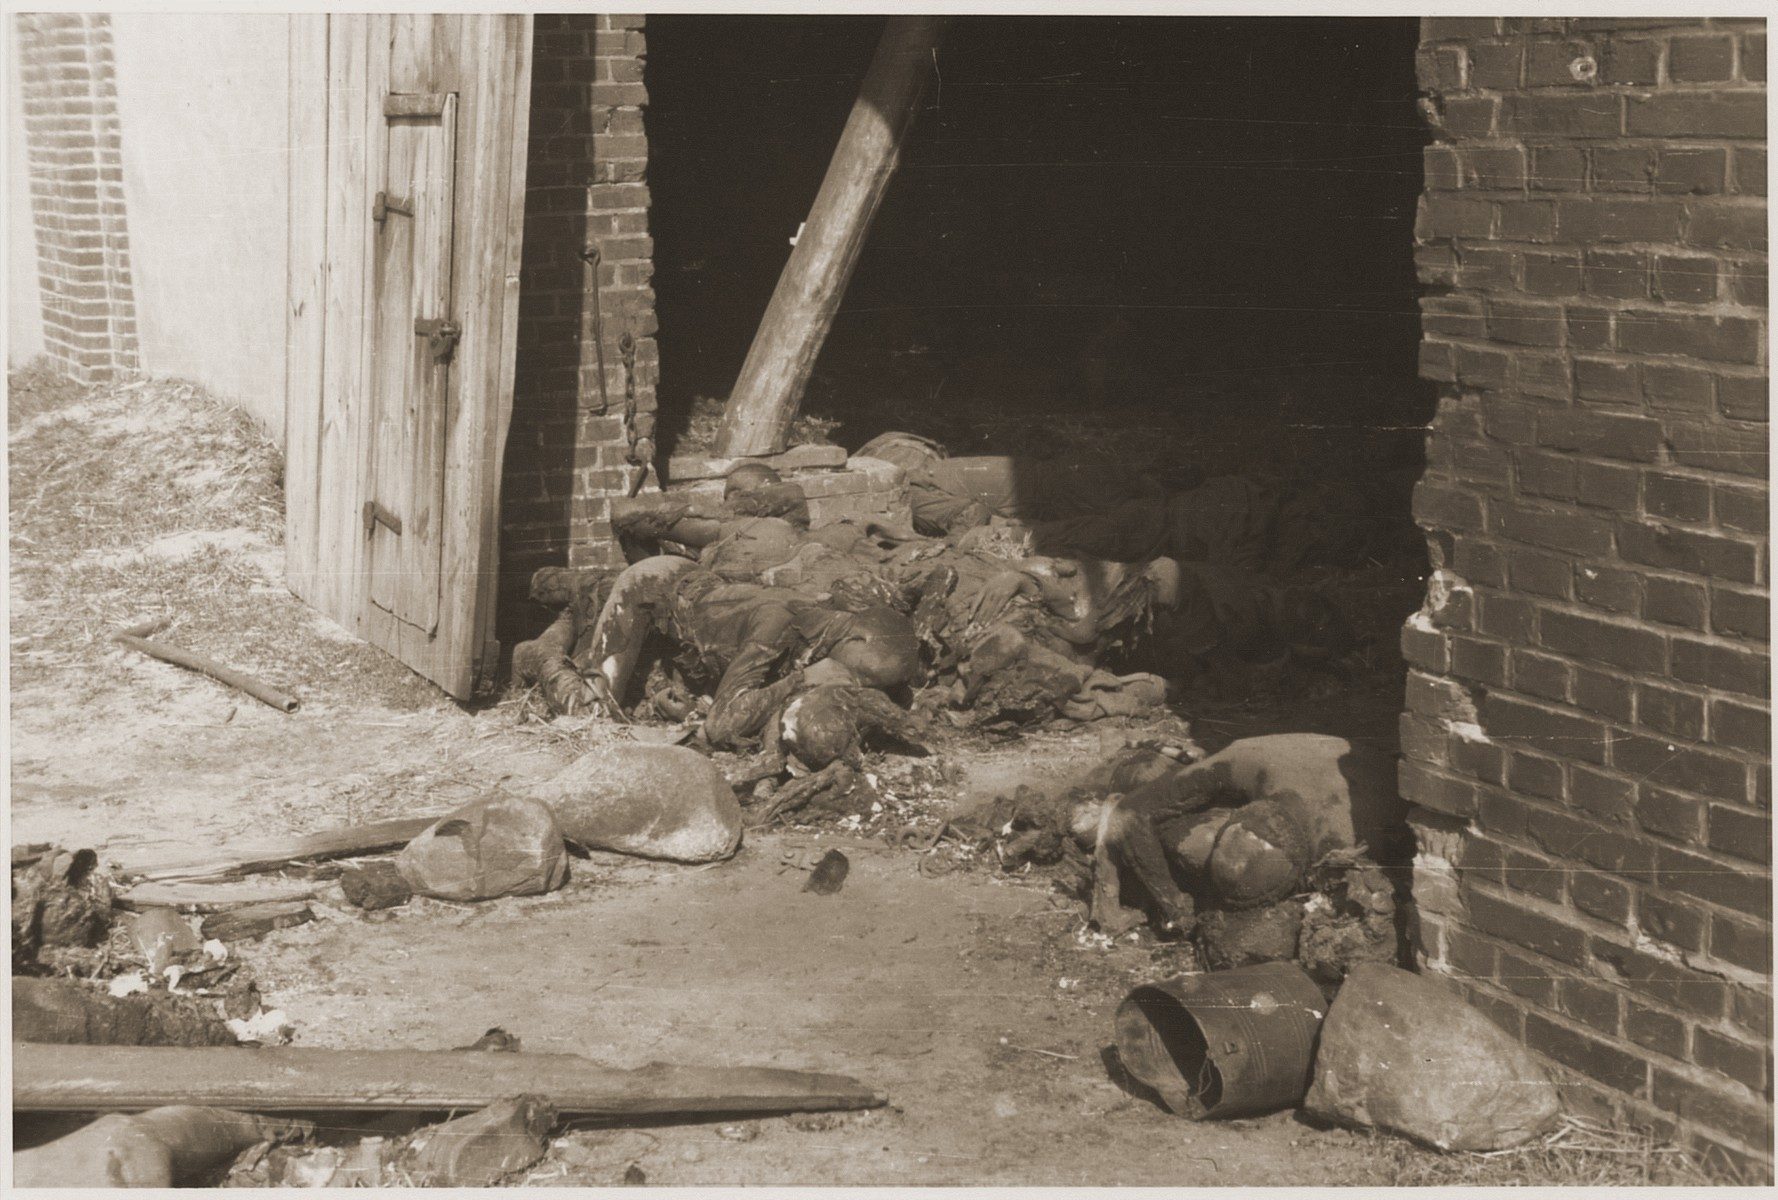 Bodies piled up just inside the entrance to a barn near Gardelegen where over 1,000 prisoners were burned alive by the SS.